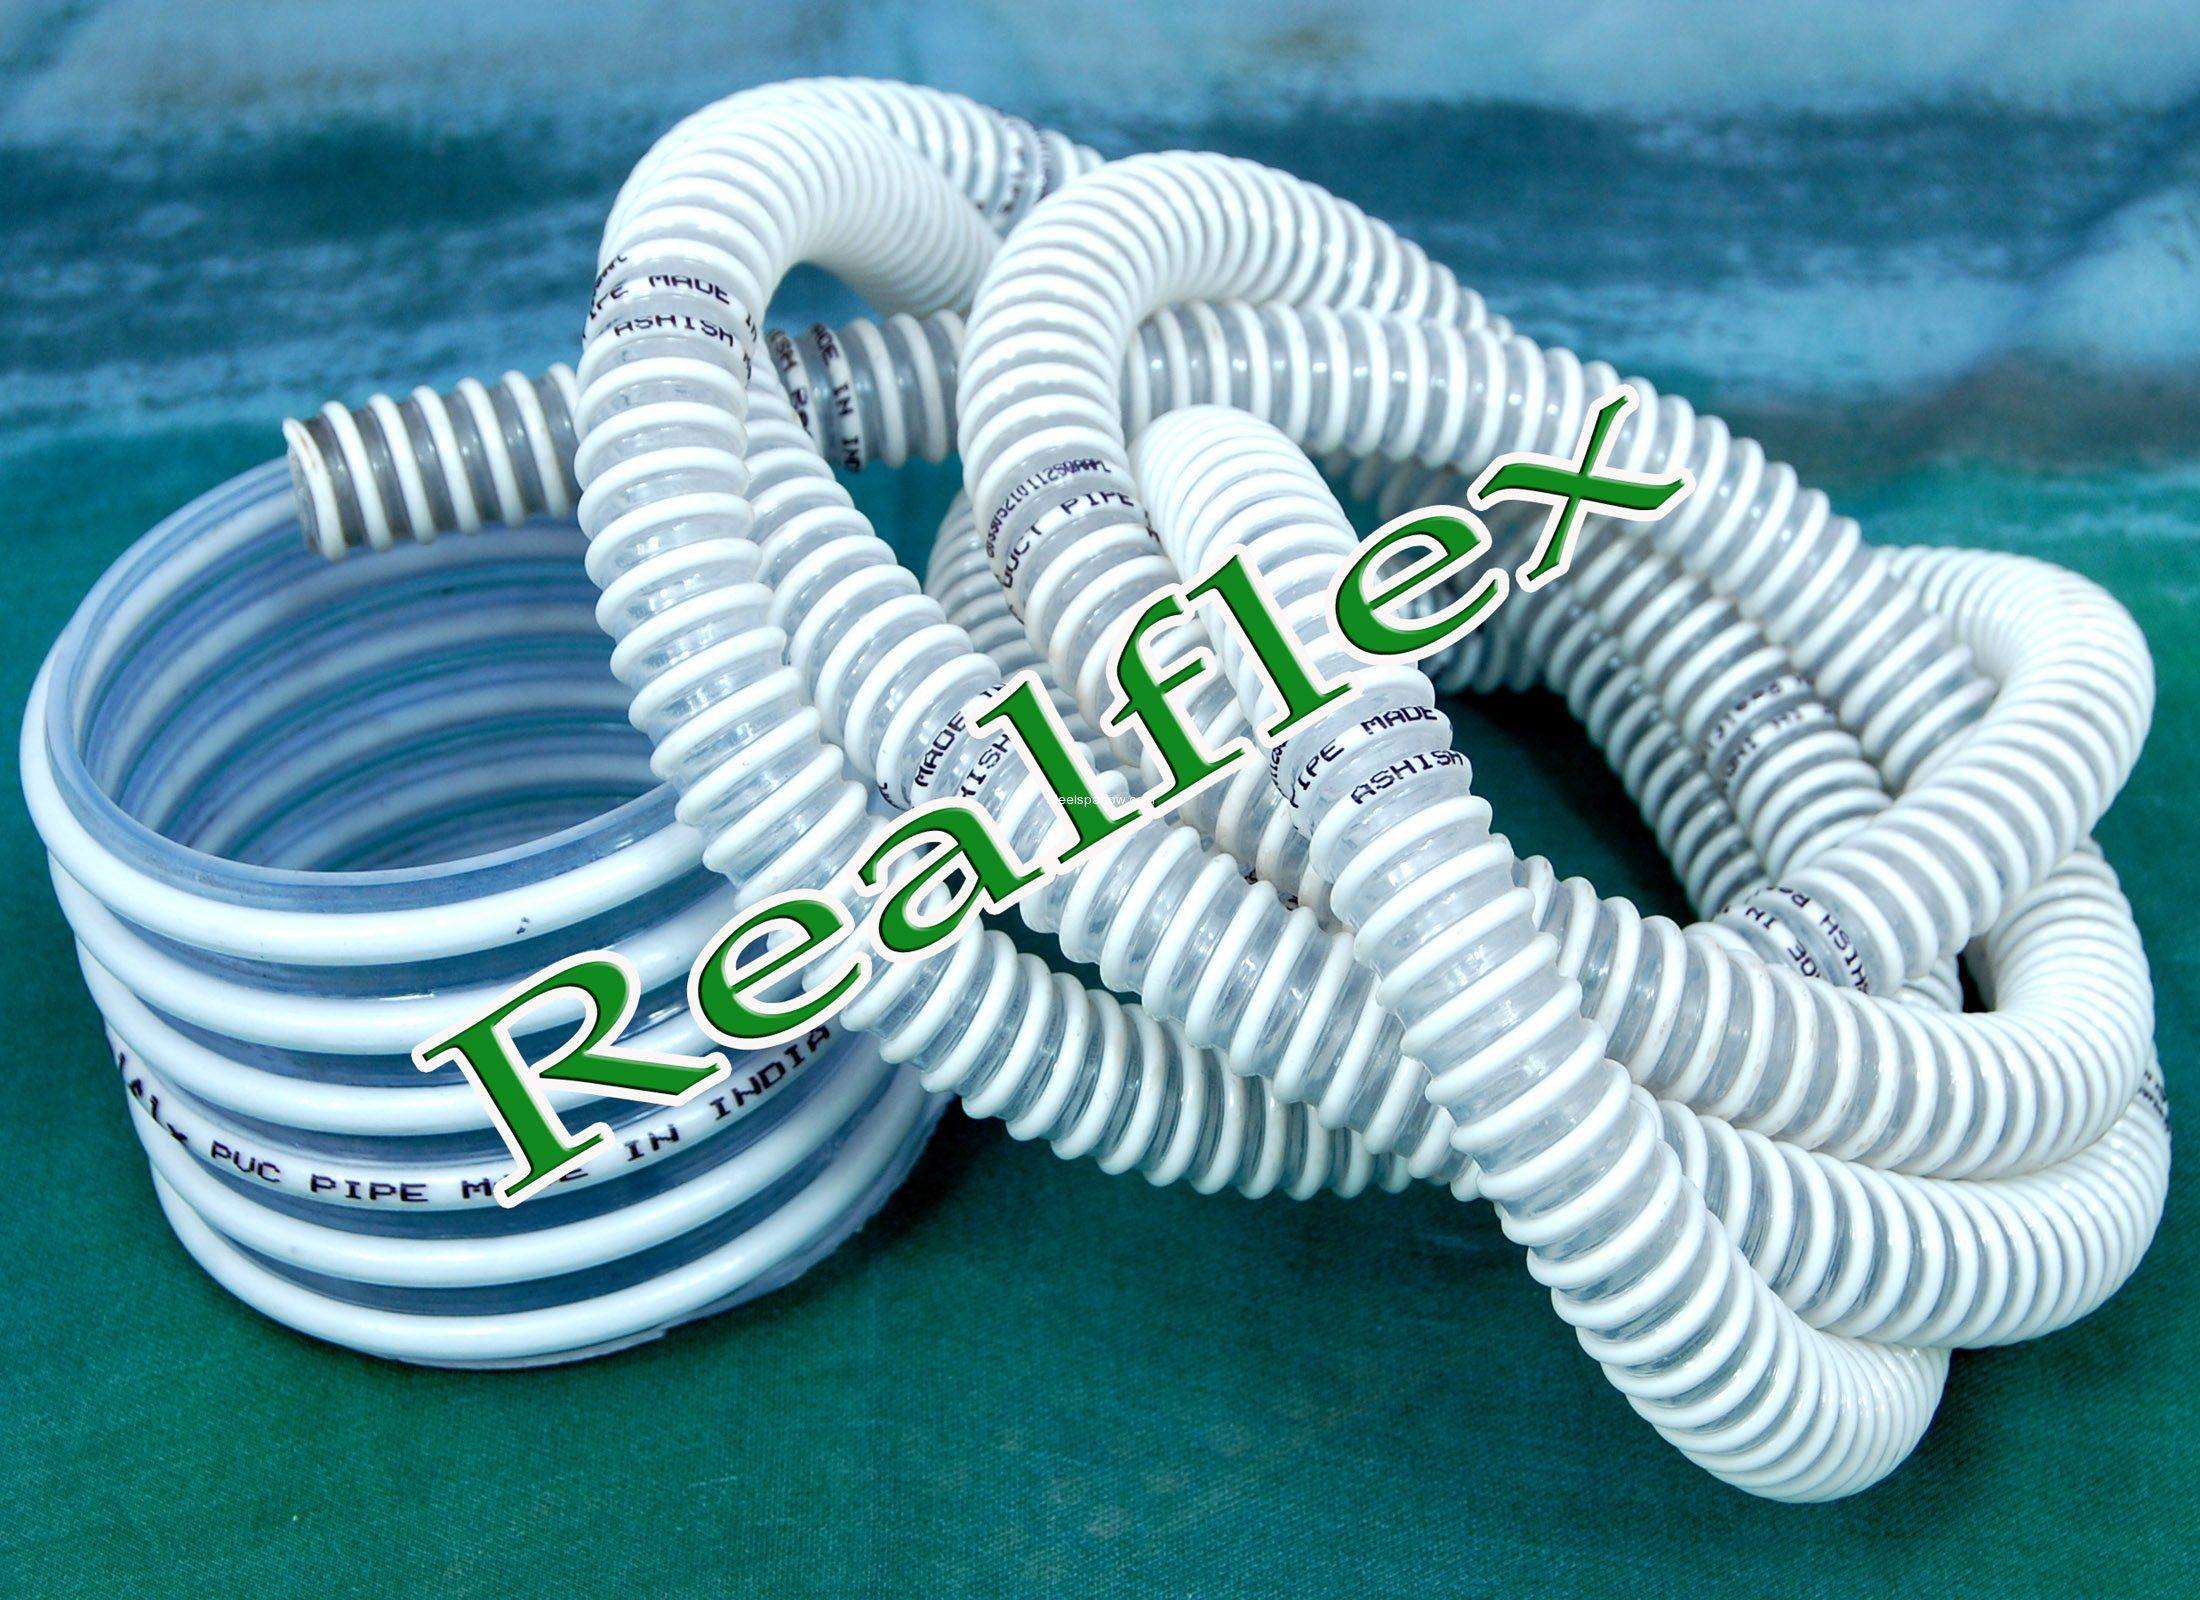 Pin on Industrial Hoses & Pipes Suppliers Online